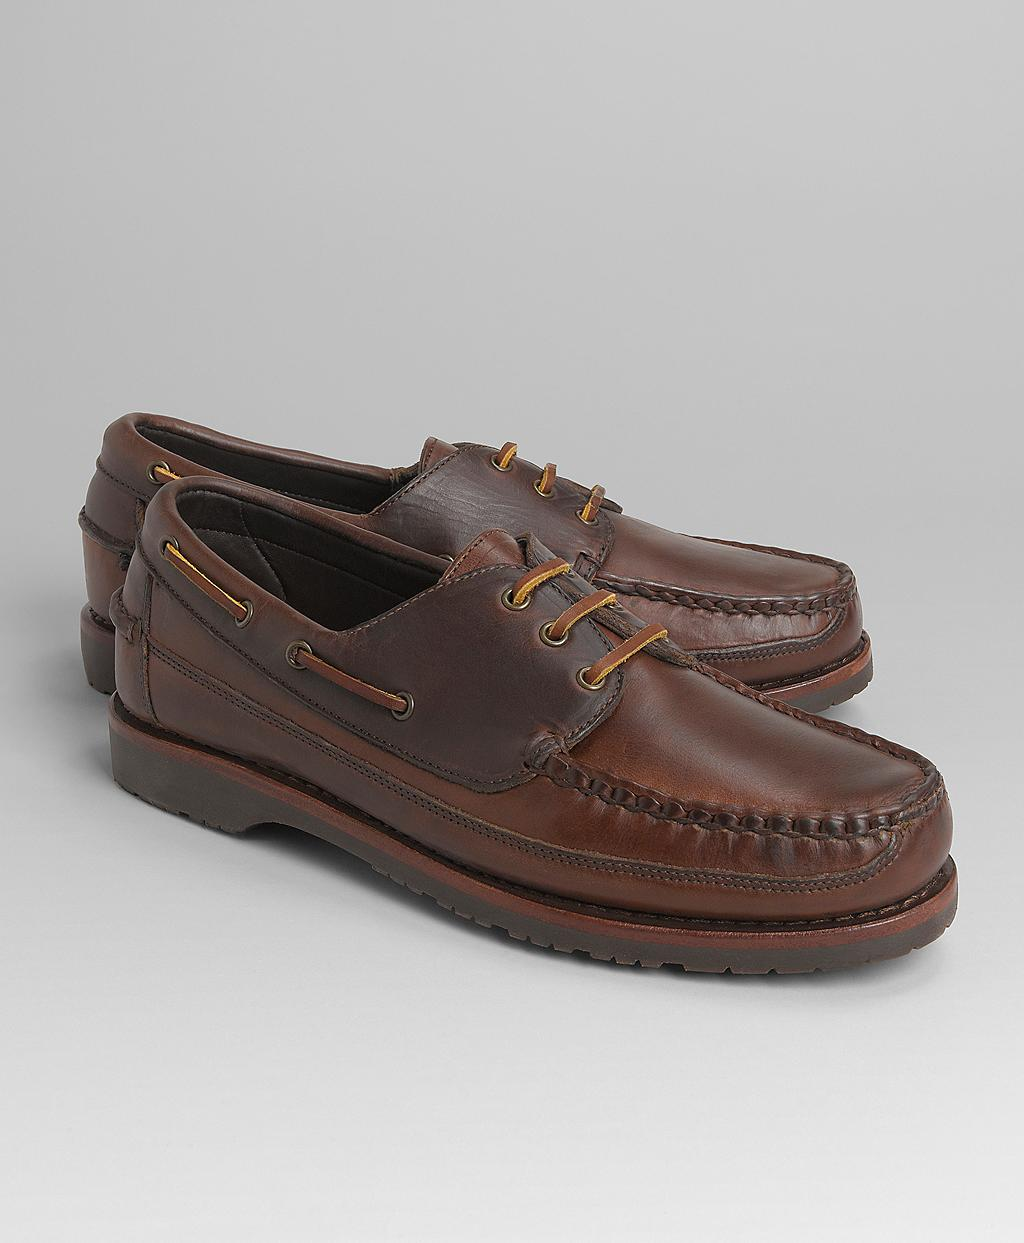 Brooks Brothers Mini Lug Sole Boat Shoes In Brown For Men